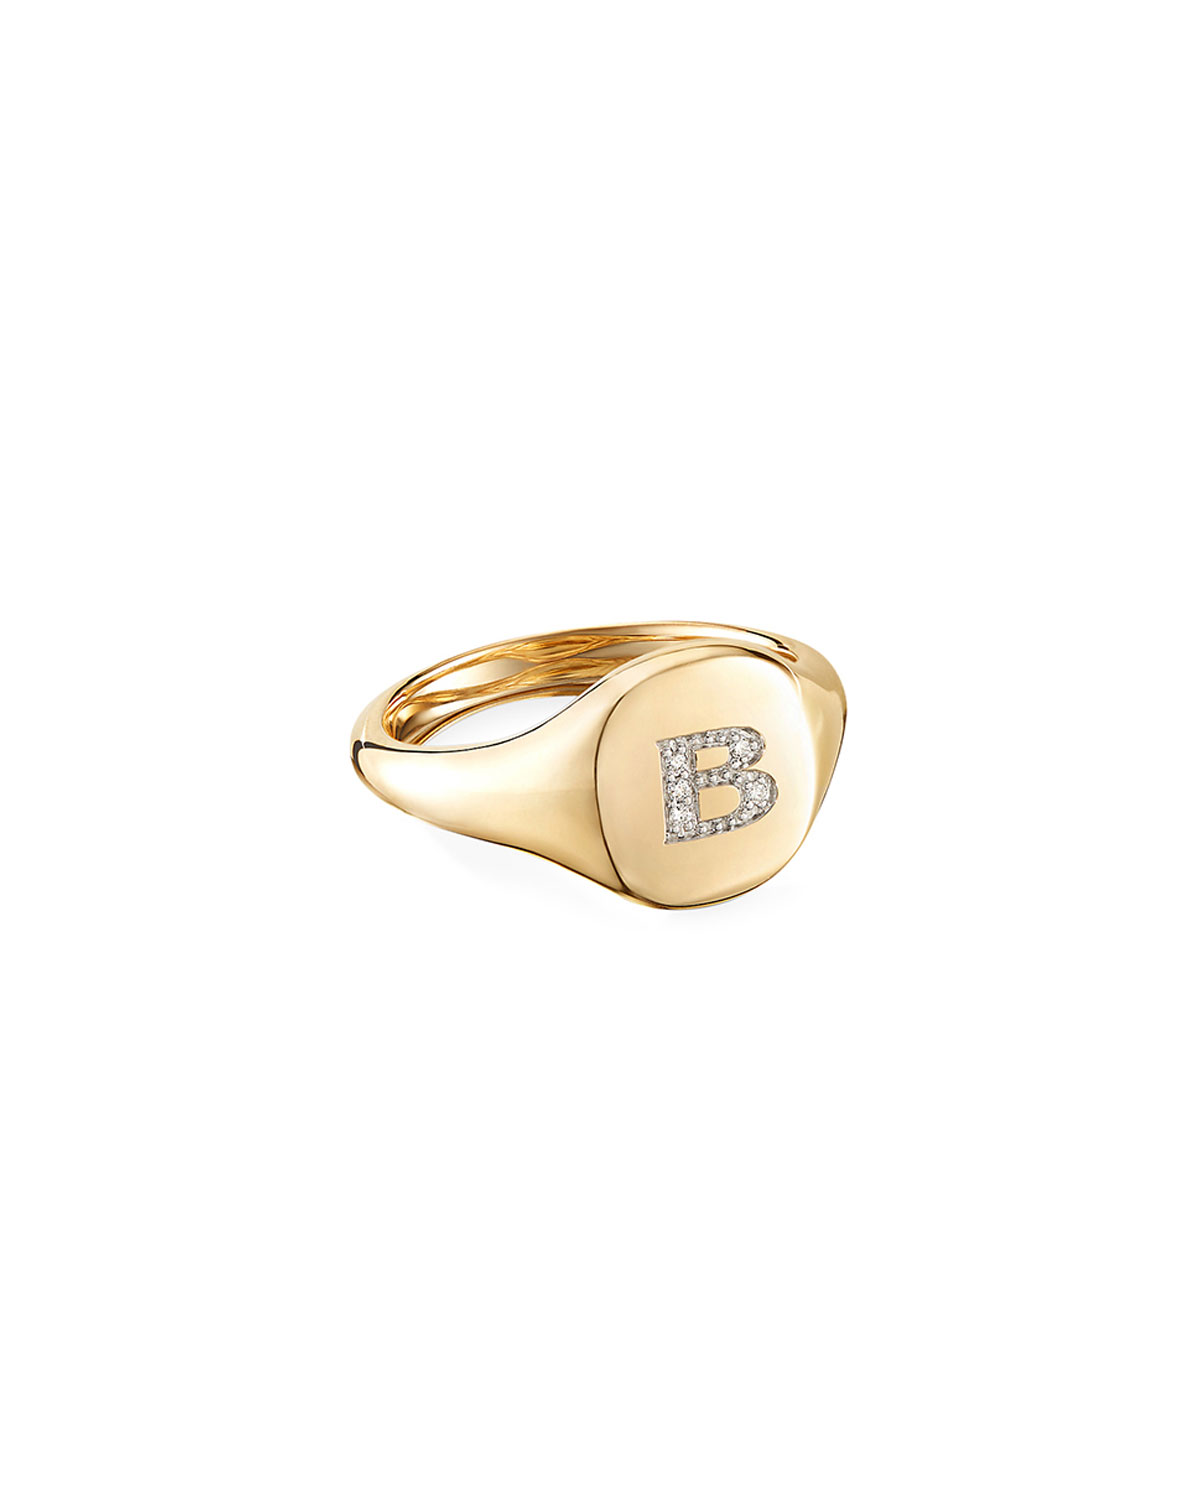 David Yurman Mini DY Initial B Pinky Ring in 18K Yellow Gold with Diamonds, Size 3.5